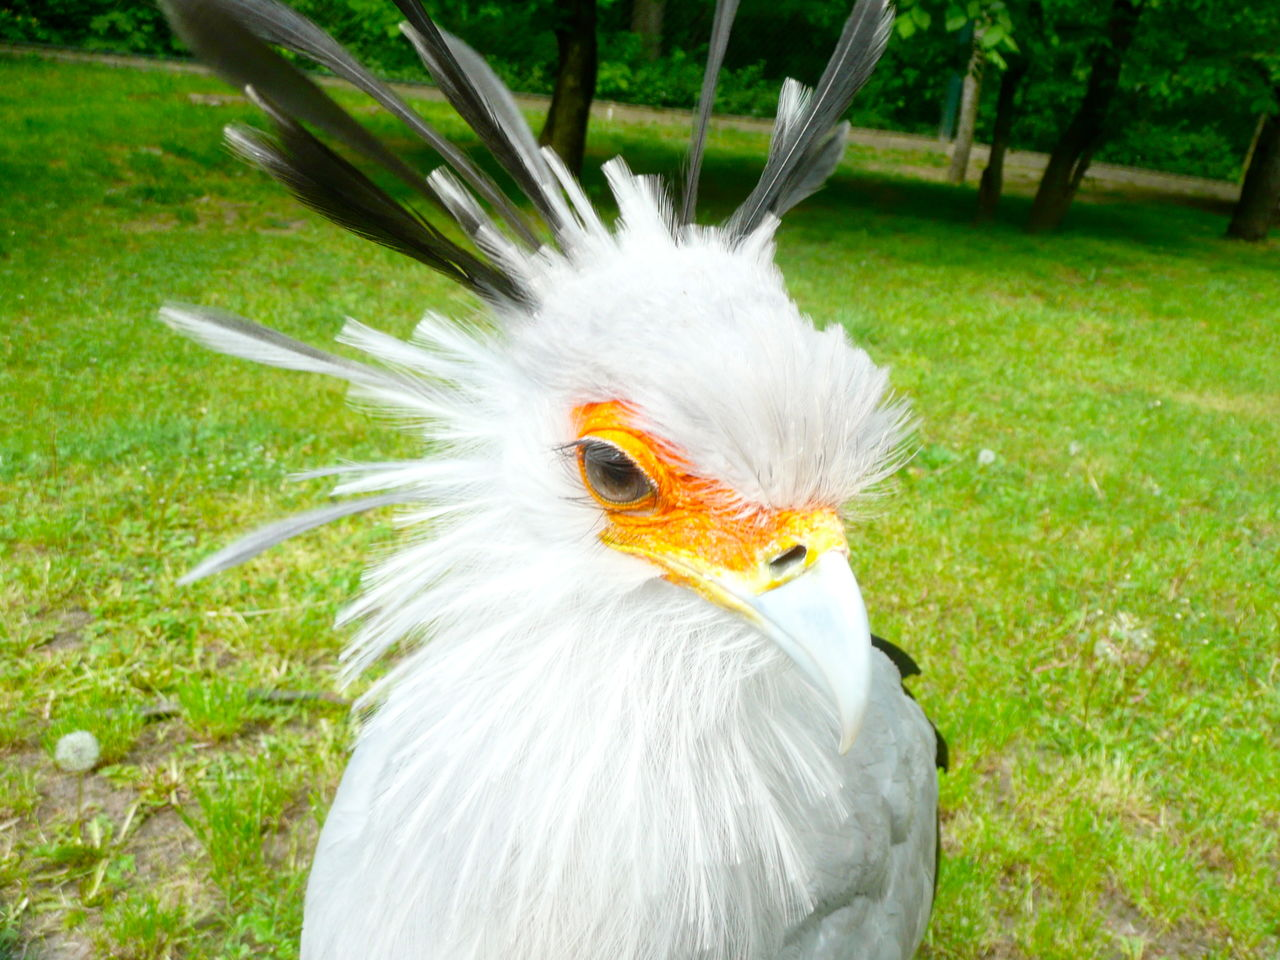 bird, one animal, animal themes, white color, grass, animals in the wild, field, animal wildlife, outdoors, beak, close-up, nature, day, beauty in nature, no people, domestic animals